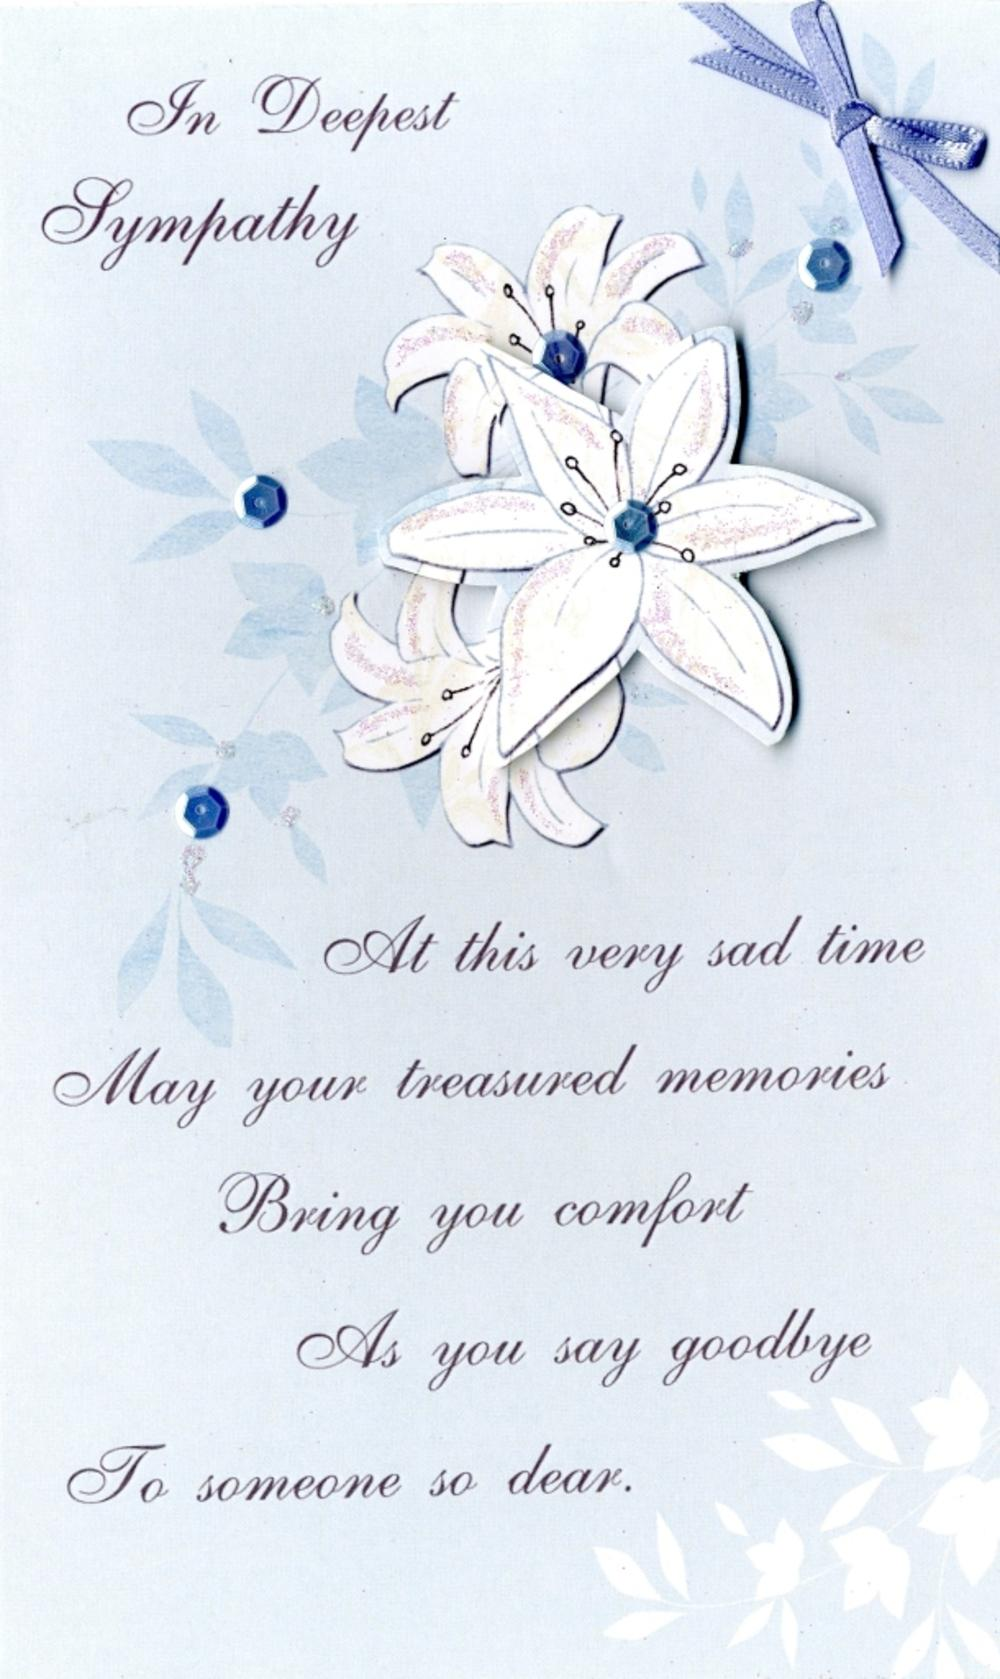 In sympathy embellished greeting card cards love kates in sympathy embellished greeting card kristyandbryce Image collections